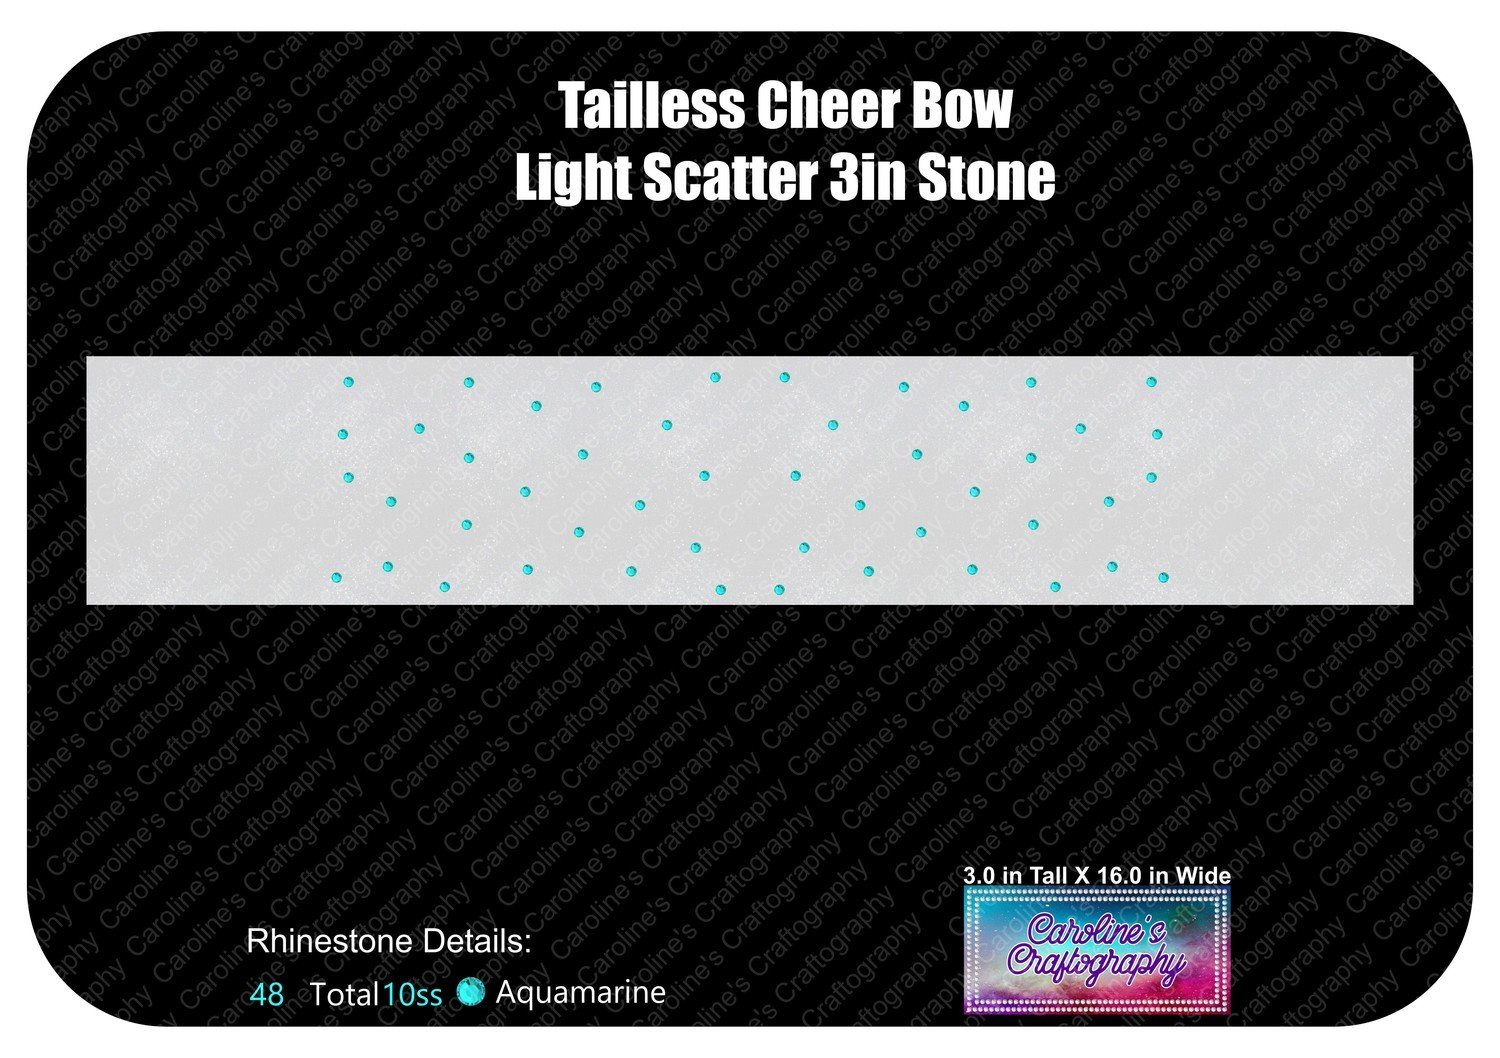 Tailless Cheer Bow Light Scatter 3in Stone